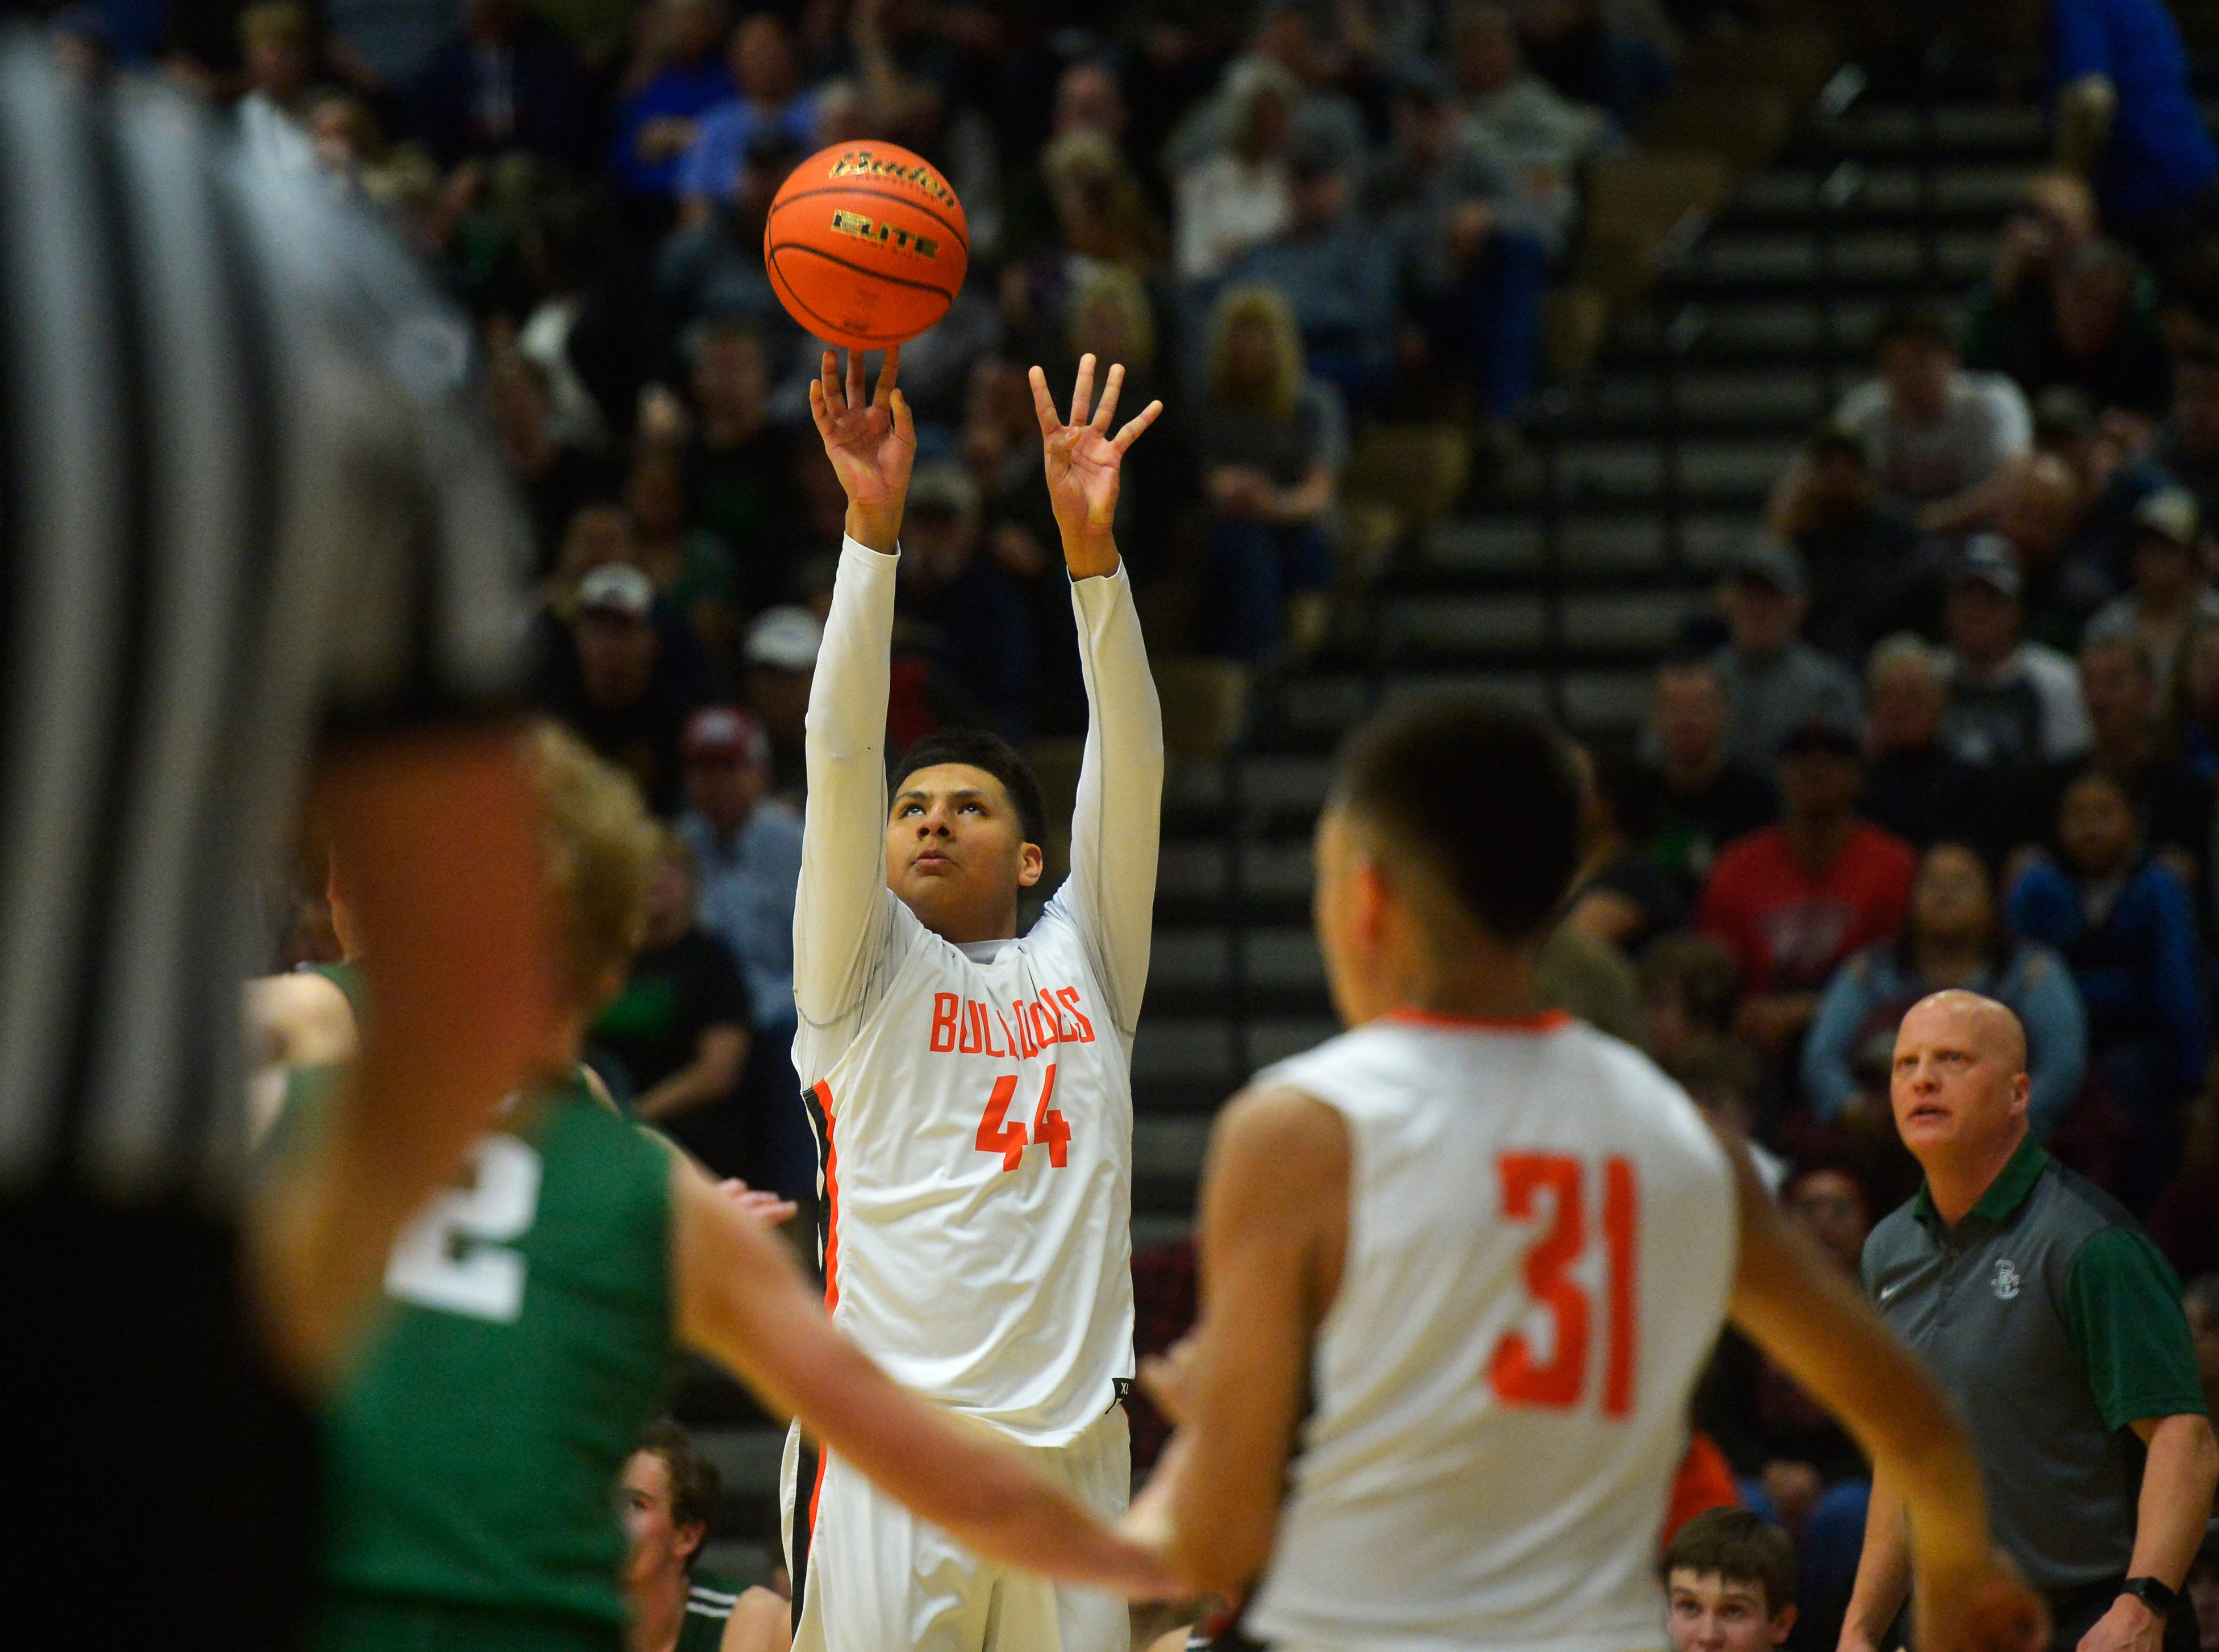 Hardin's Kidd Littlelight shoots during the title game of the State Class A Basketball Tournament against Billings Central in the Four Seasons Arena, Saturday.